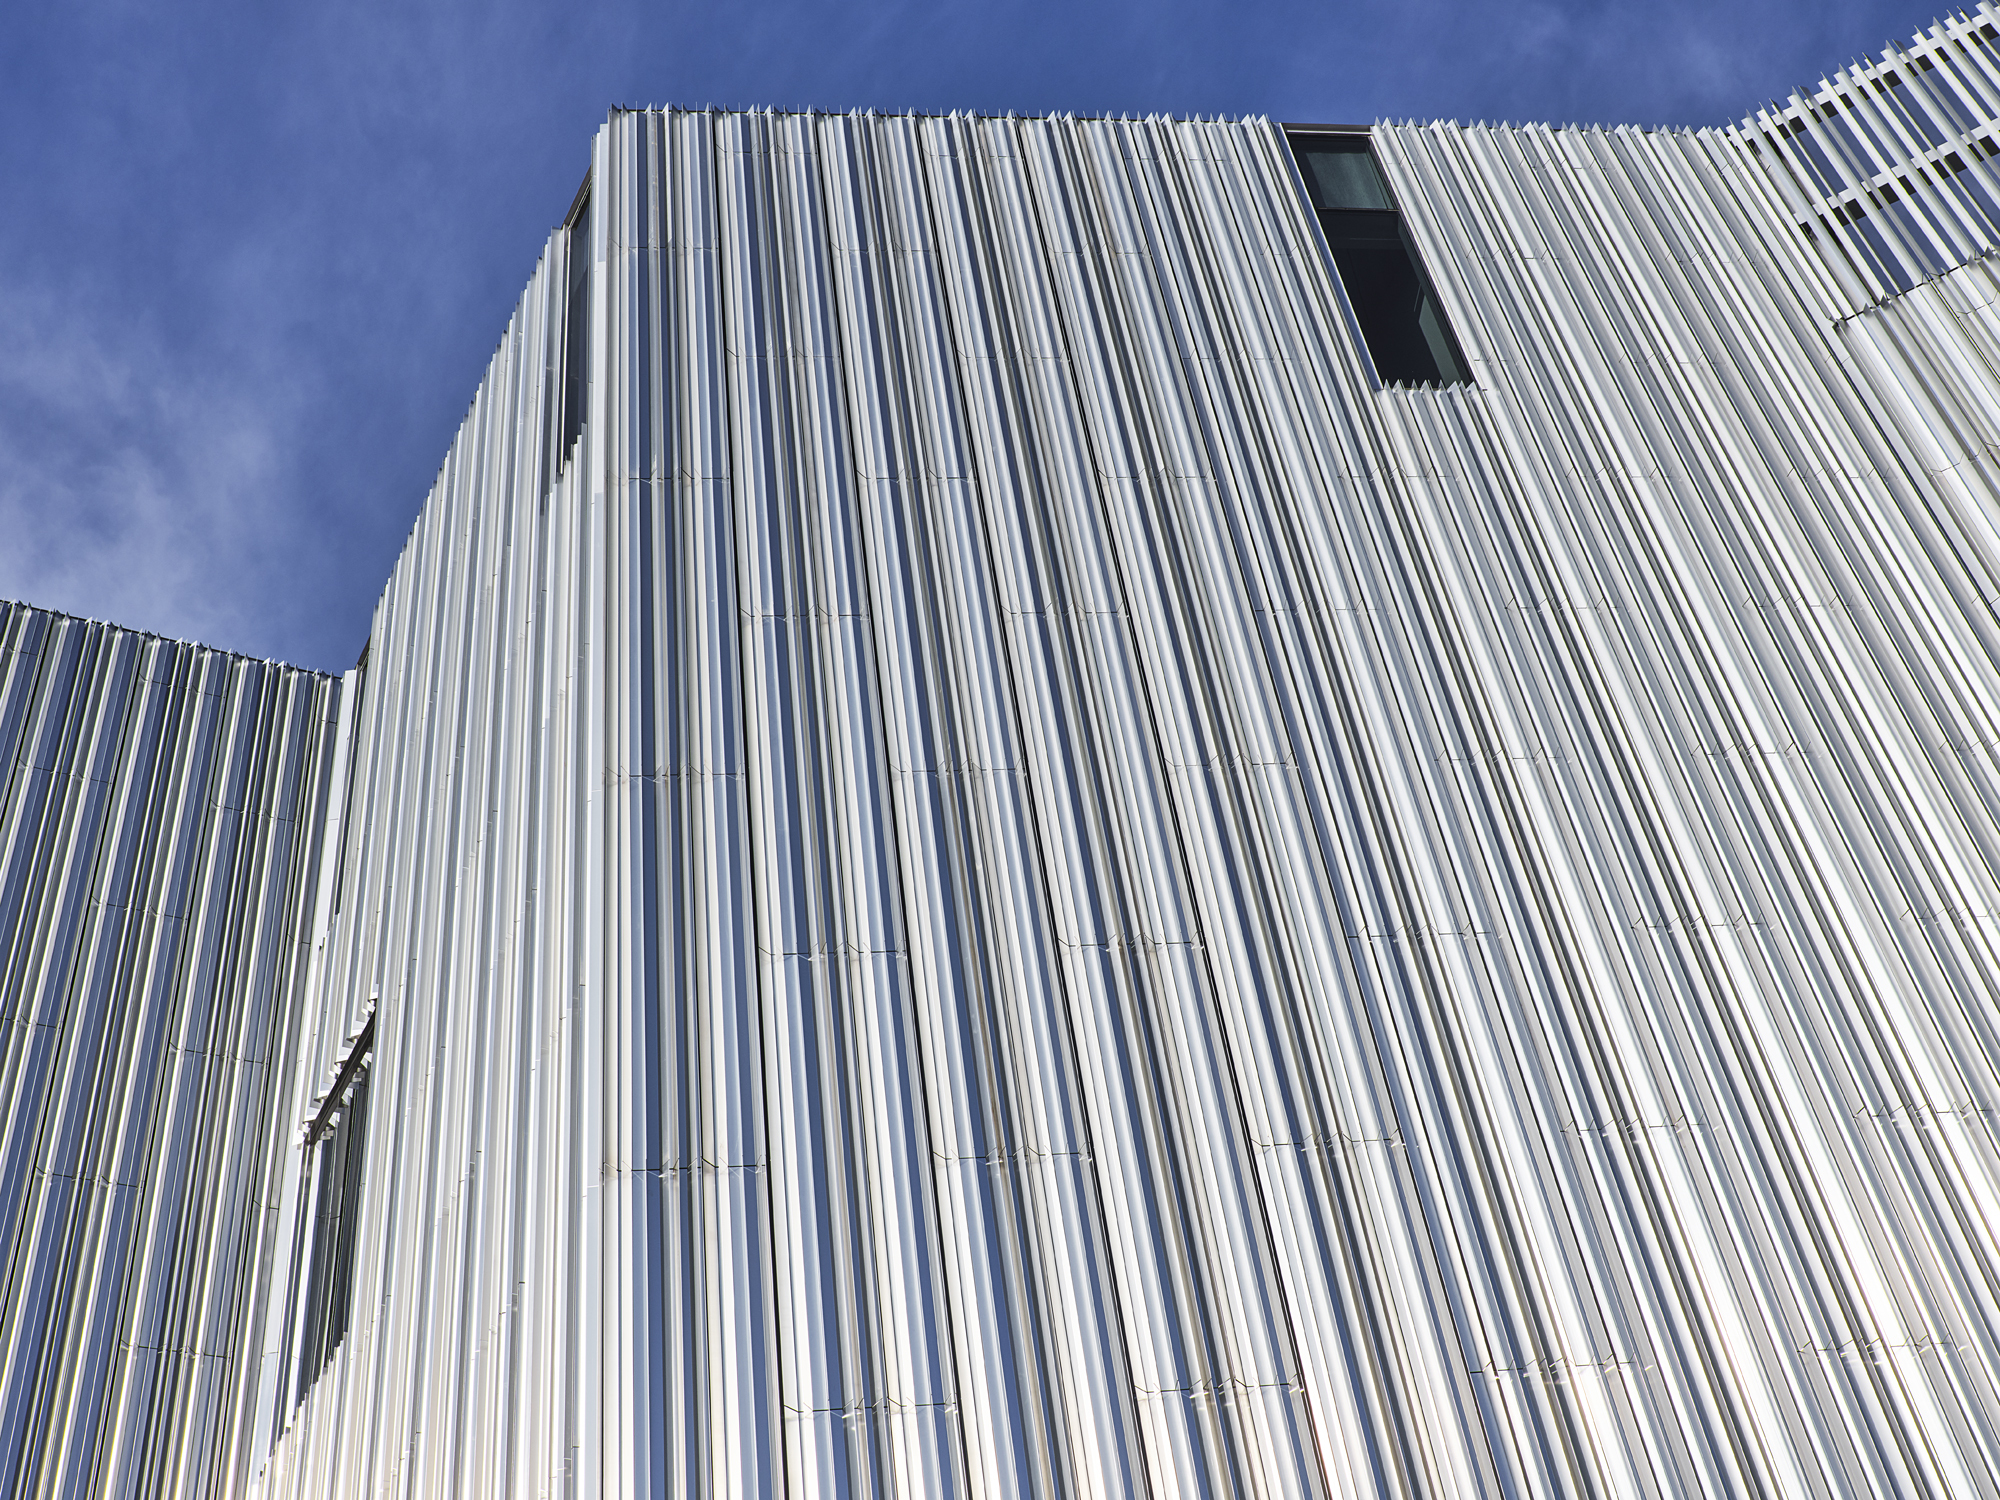 Detail photograph of an angle of a metal building set against a blue sky